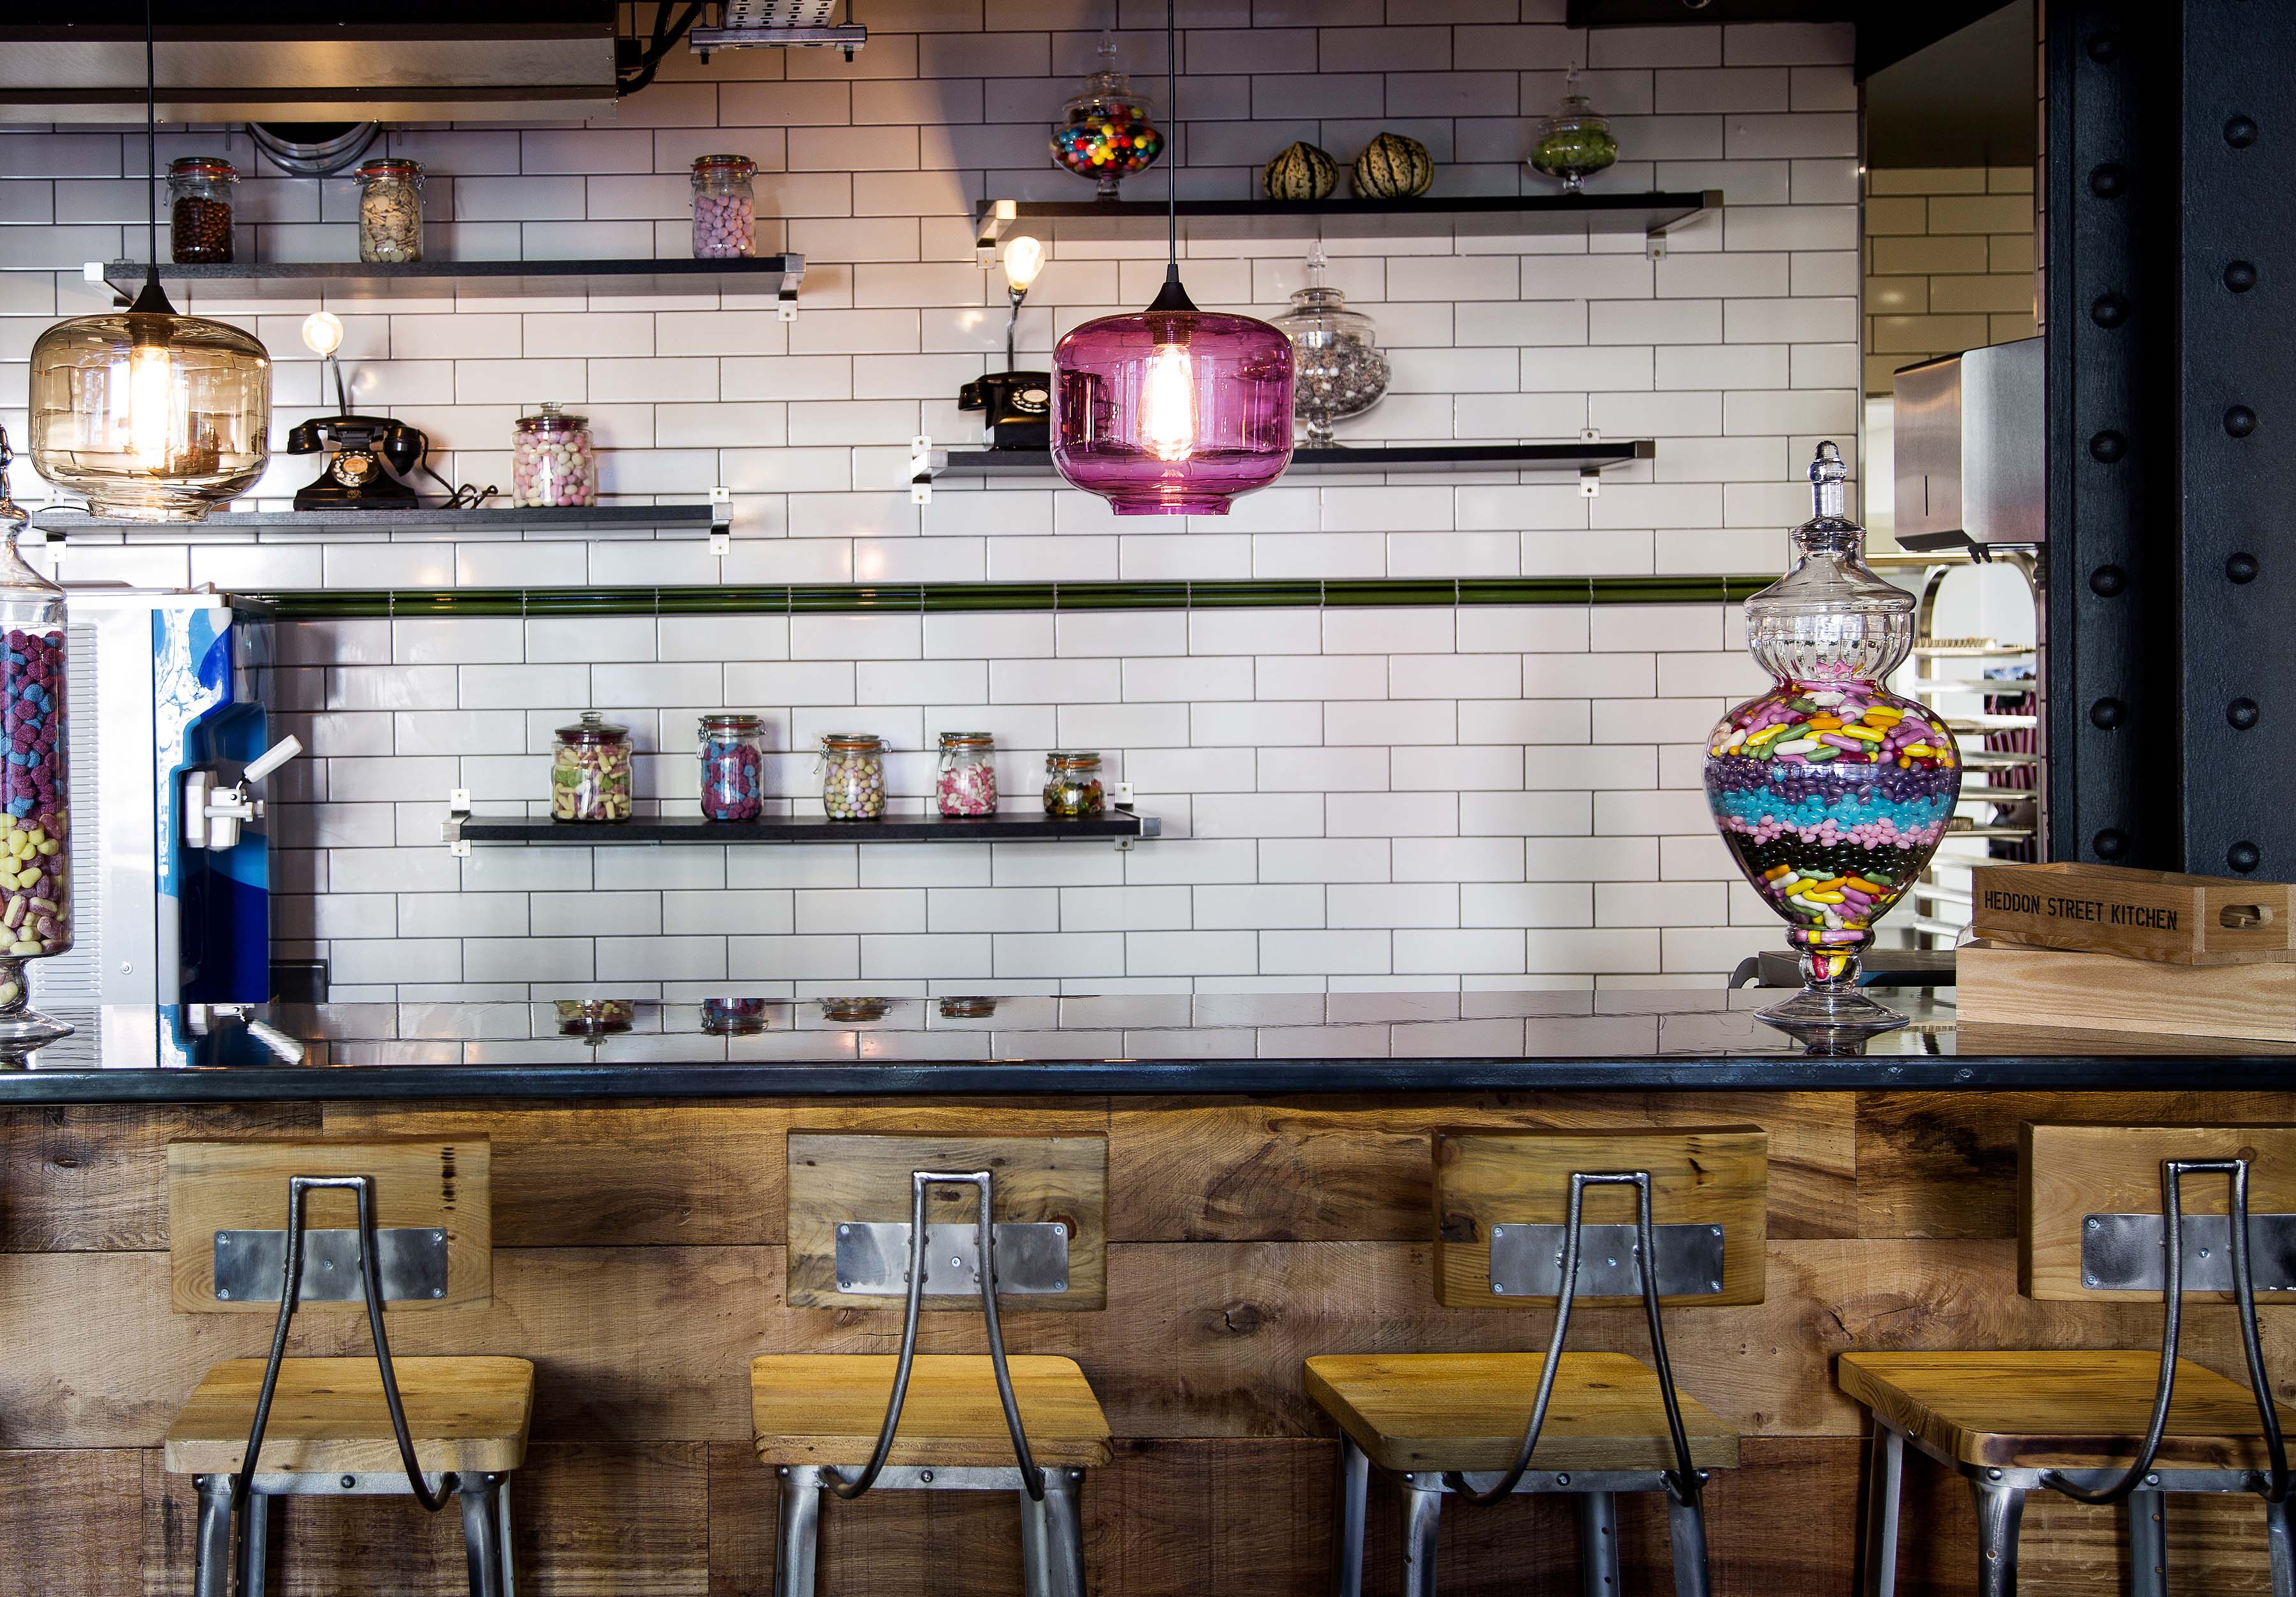 Heddon Street Kitchen - Gordon Ramsay Restaurants - London